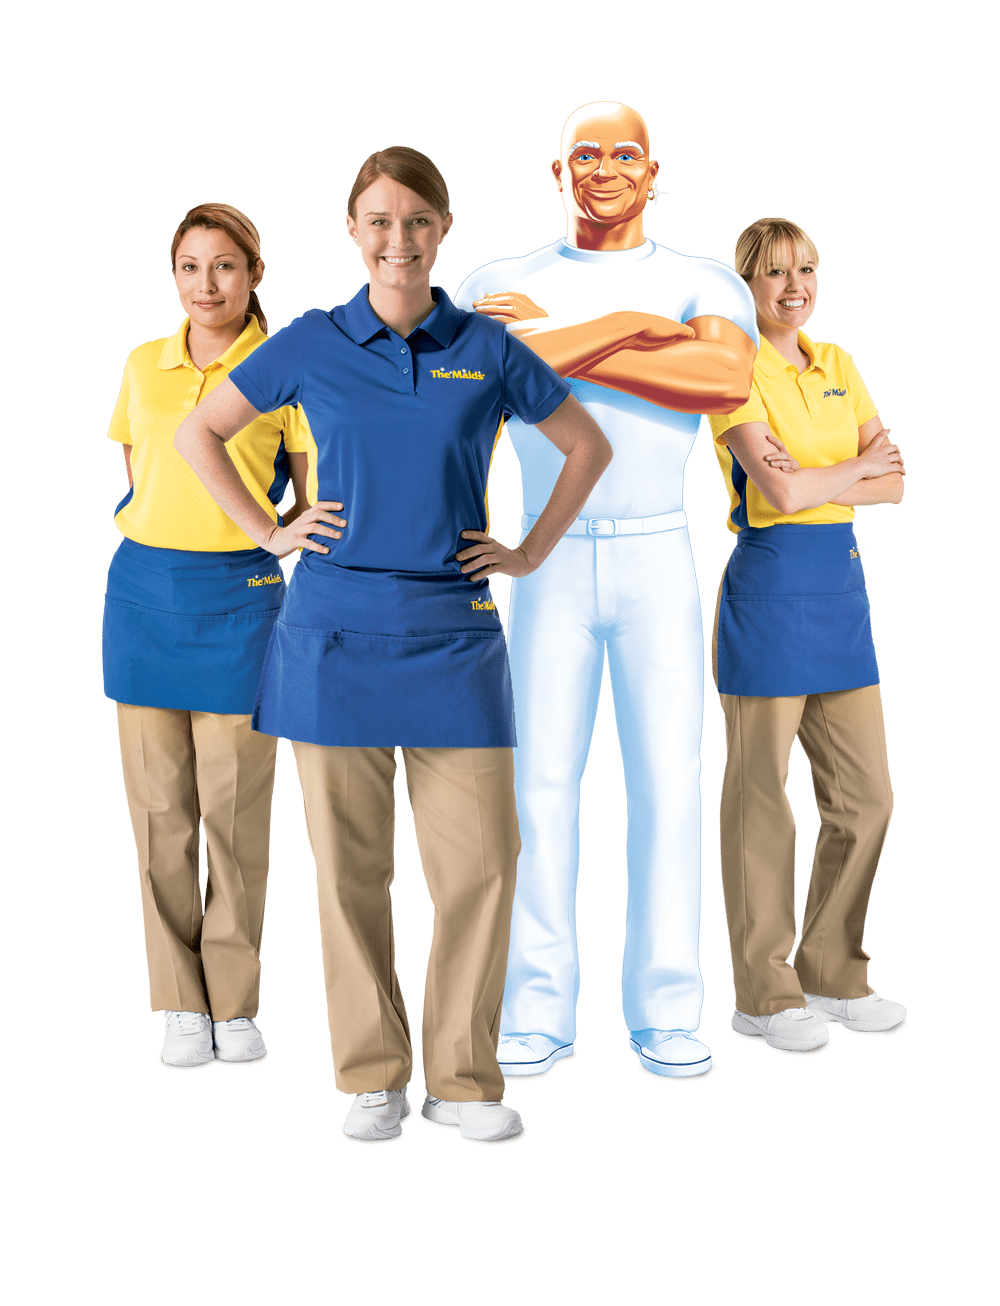 The Maids House Cleaning - The Maids in Frederick and Northern Montgomery Counties Home Cleaning